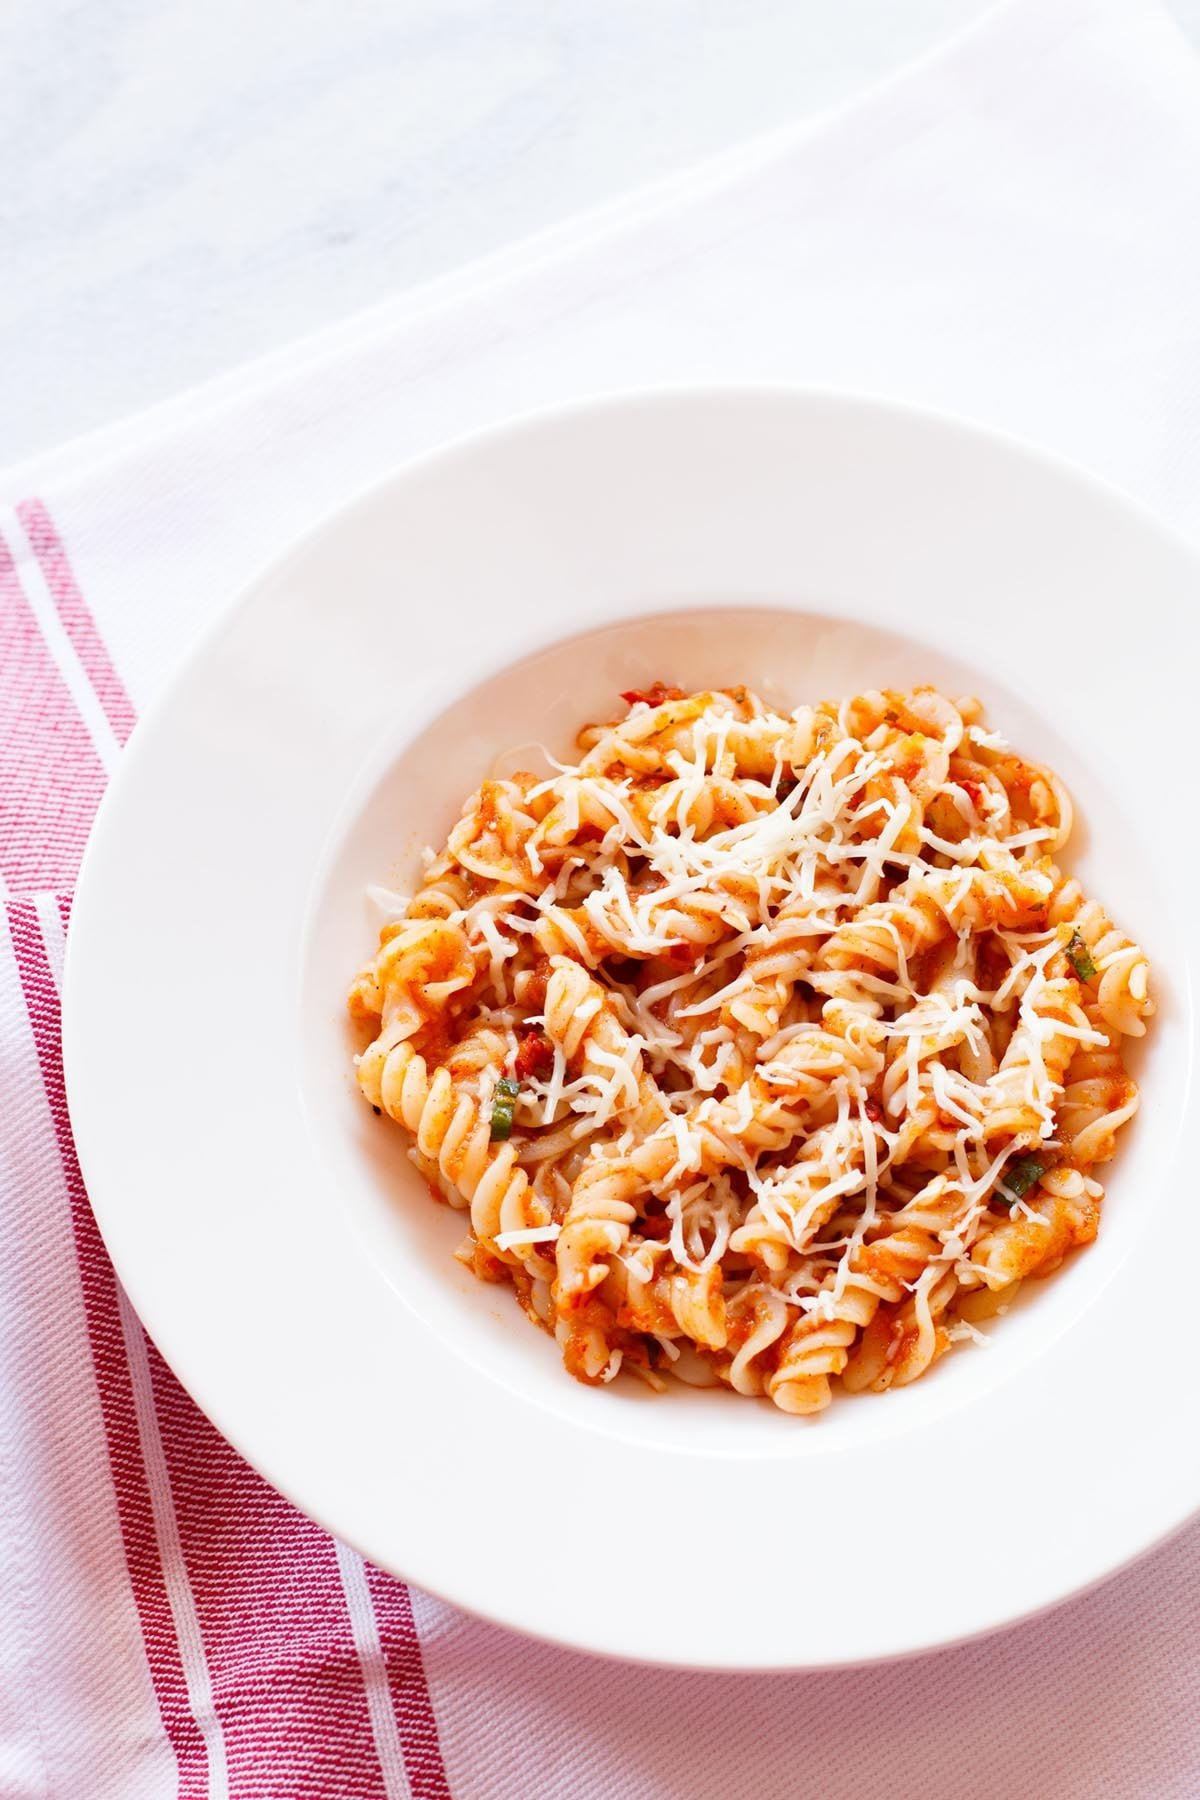 pasta arrabiata in a deep dish on a red bordered white napkin